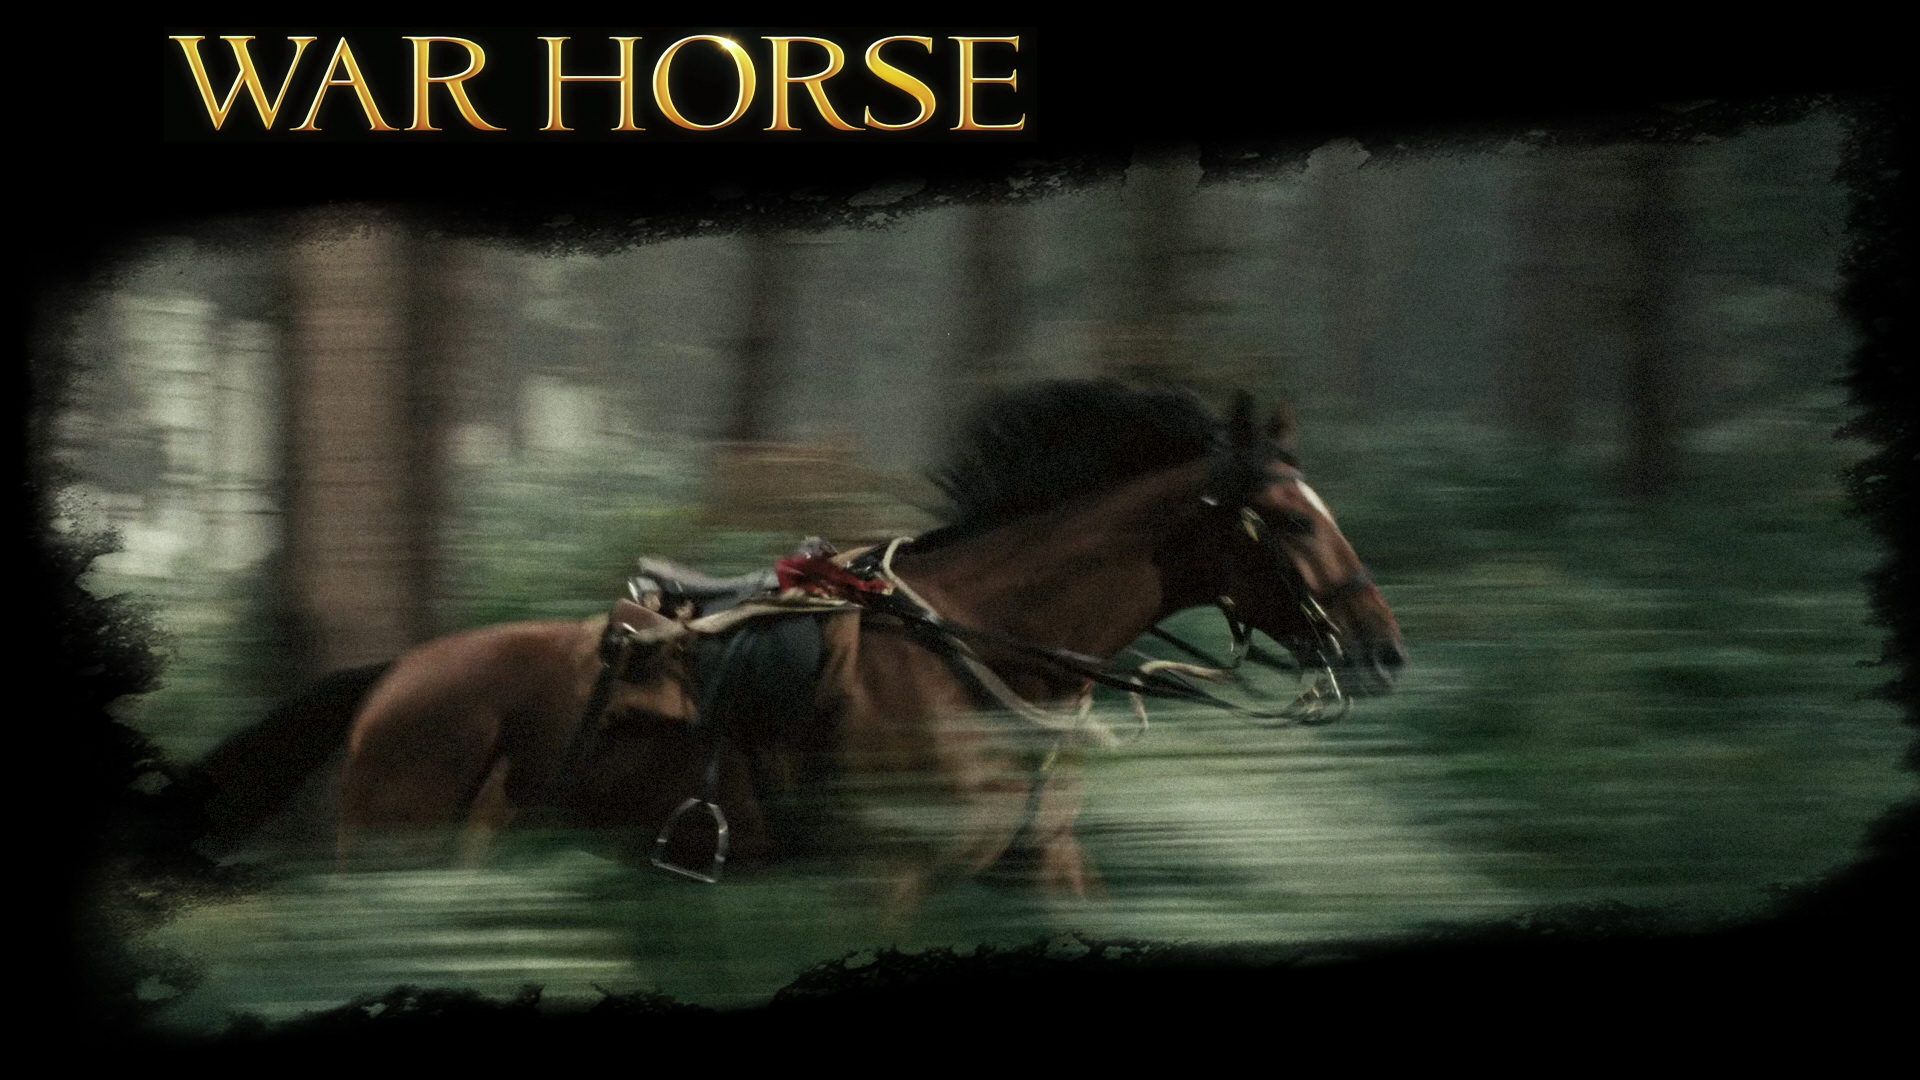 Download Wallpaper Horse Ipod Touch - warhorse-wallpaper-movie  Perfect Image Reference_503377.jpg